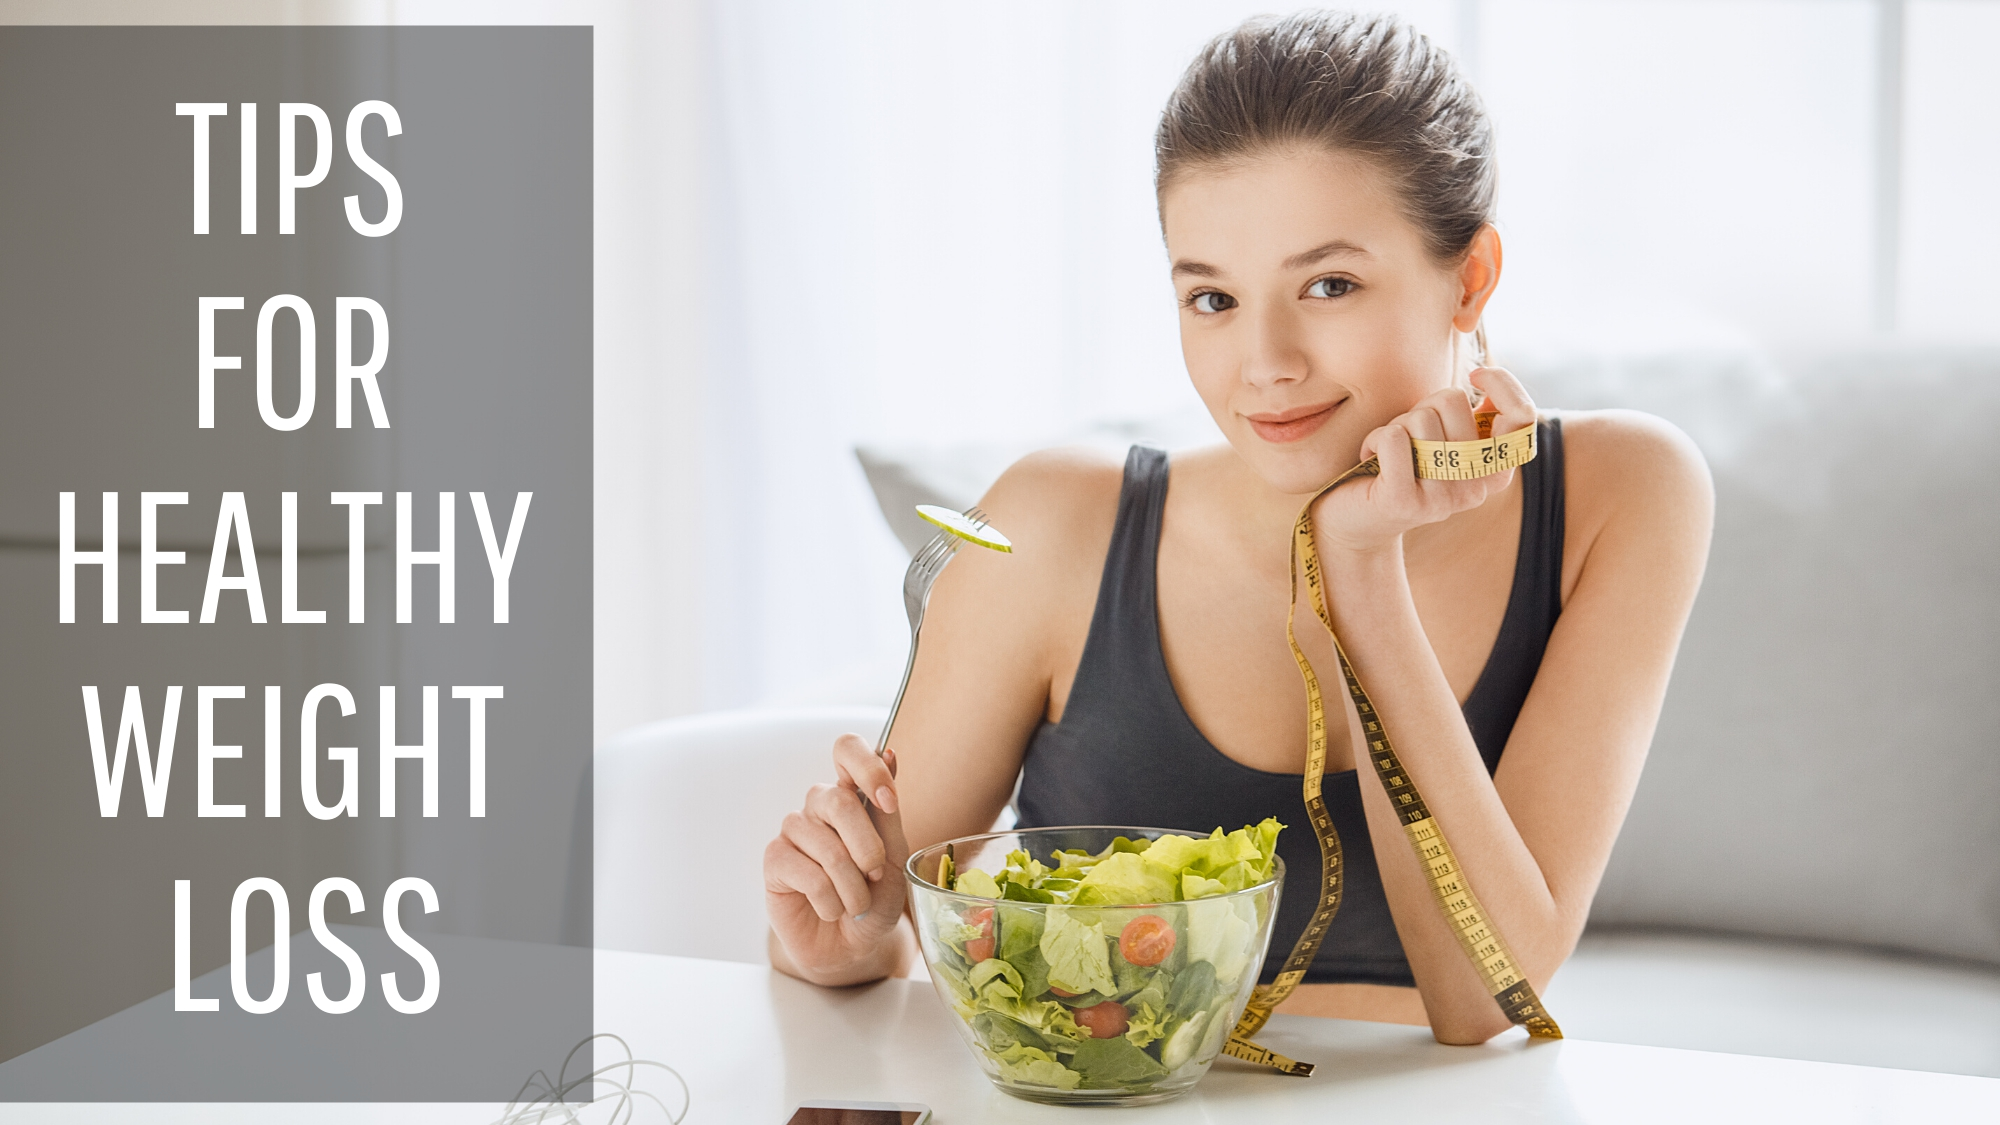 How To Lose Weight On A Plant-Based Diet